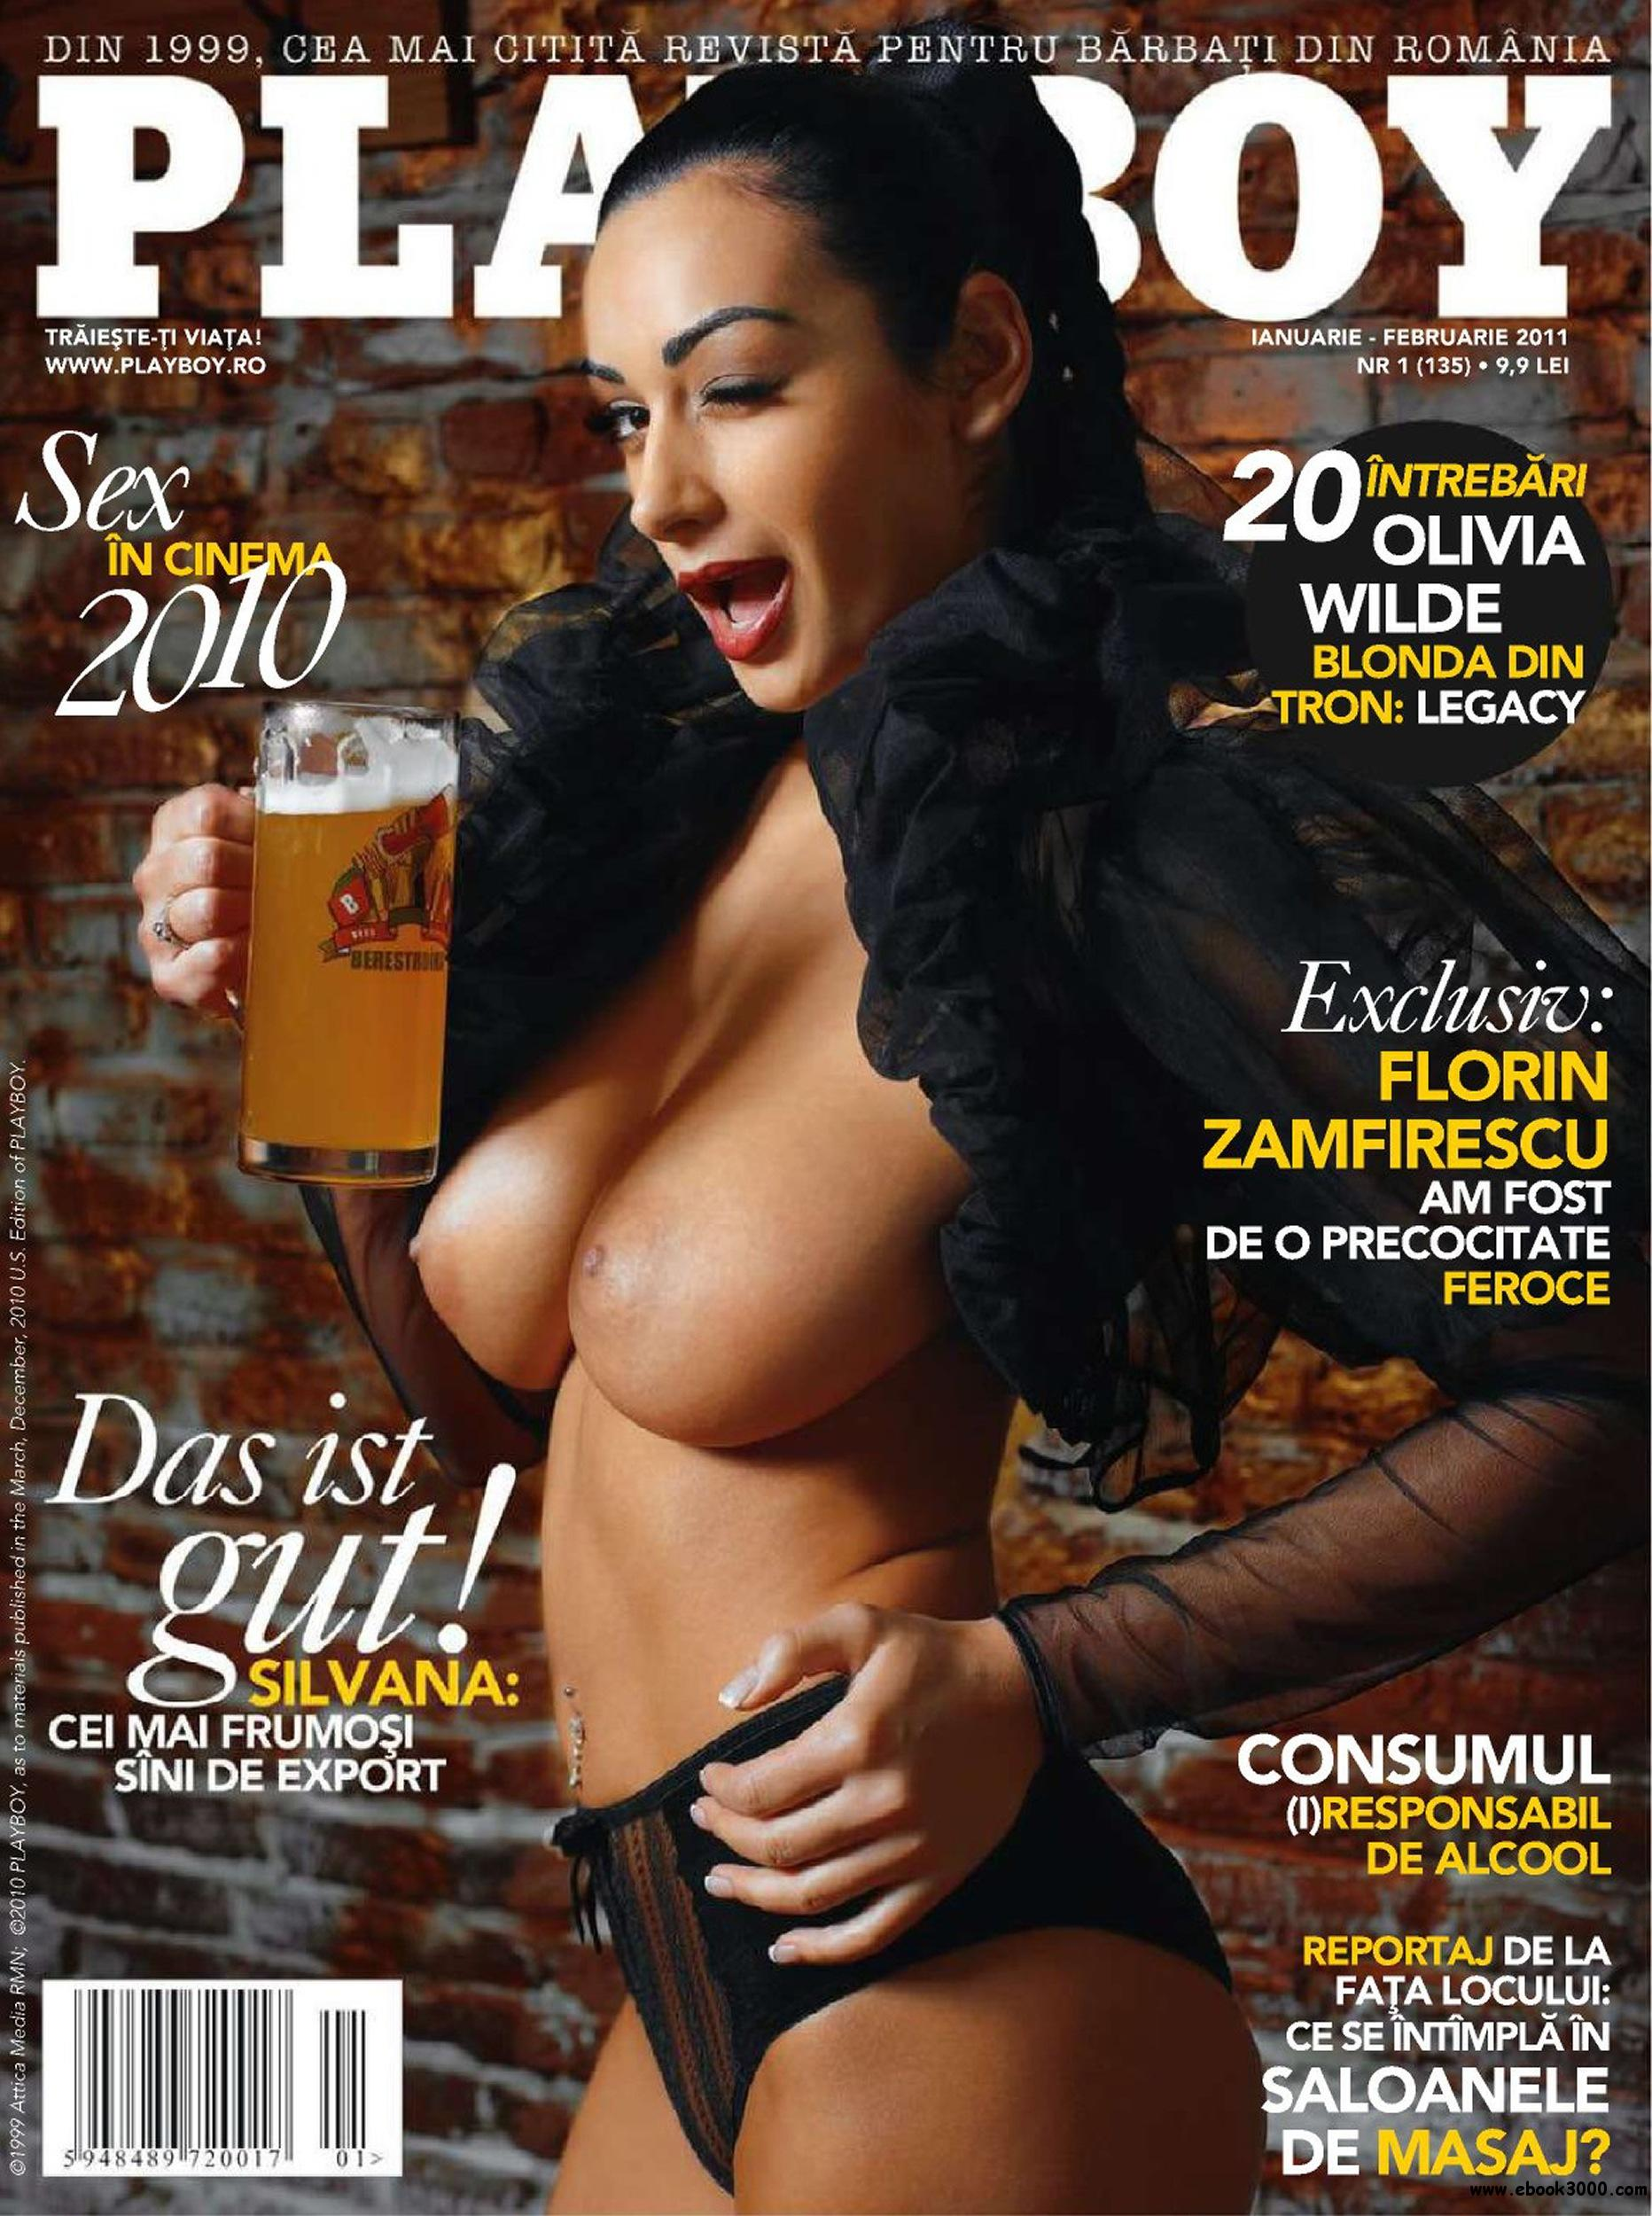 Playboy Romania - January/February 2011 - No watermark free download